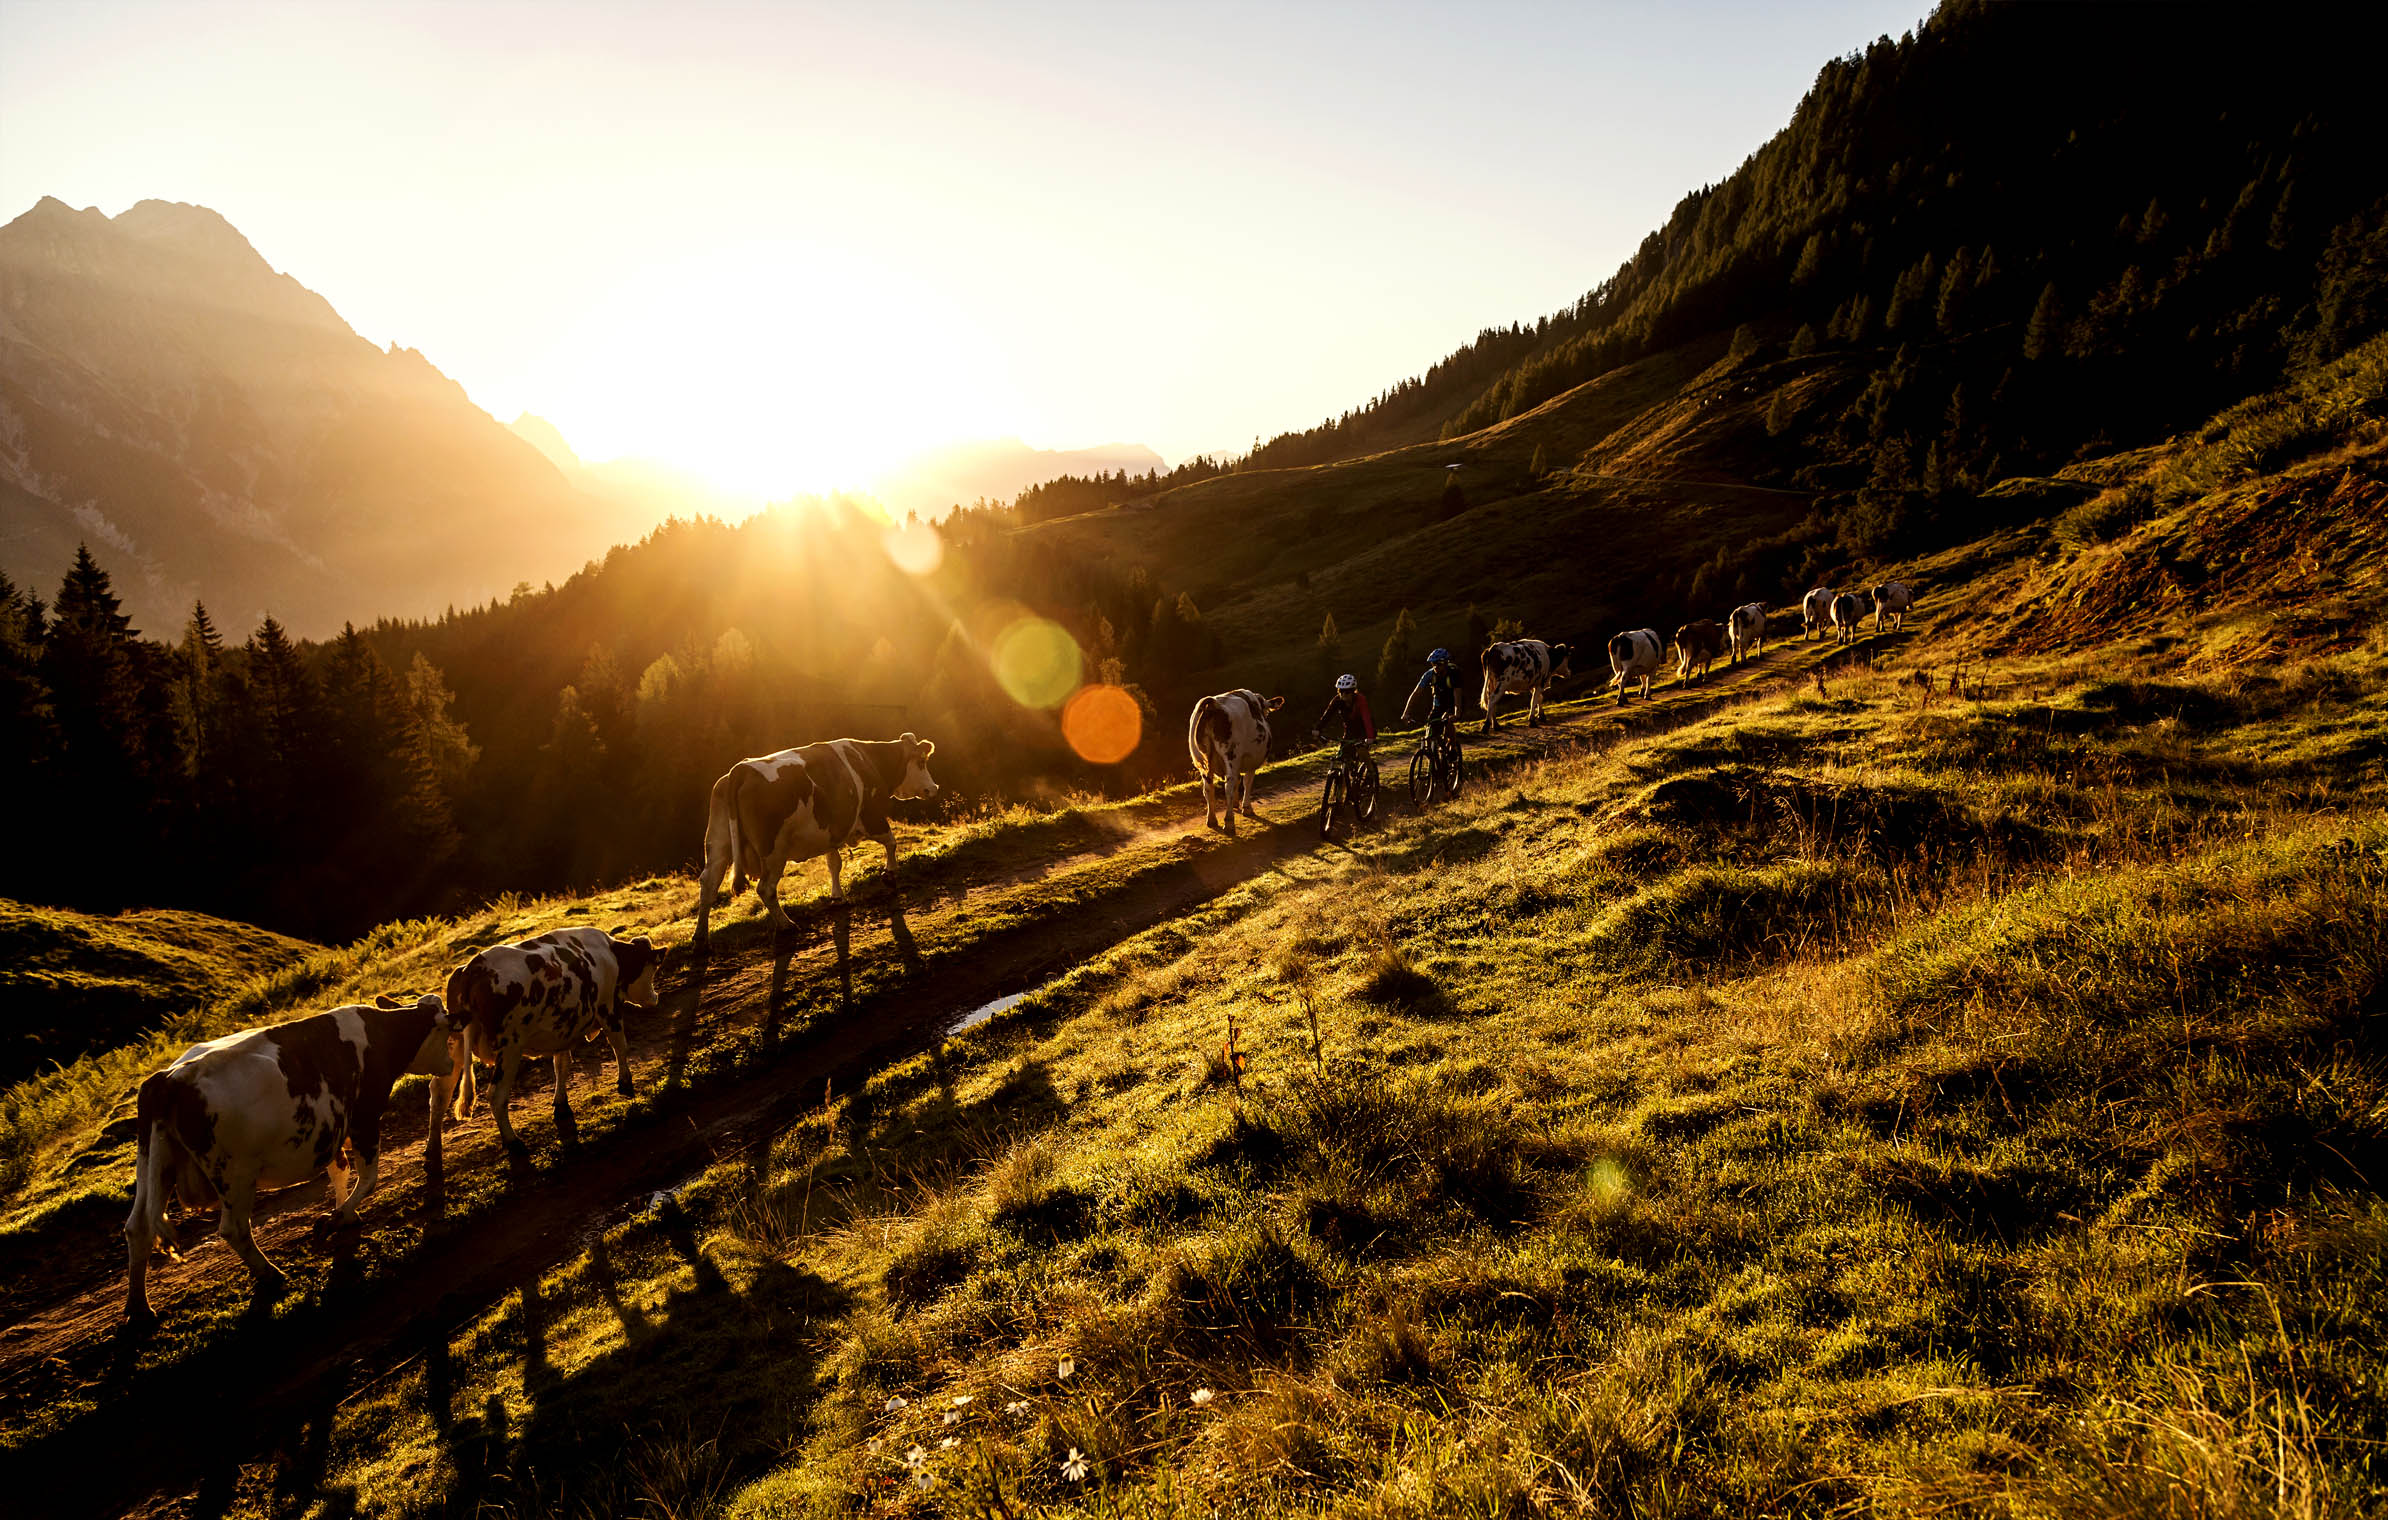 saalfelden_leogang_sunrise_cows_epic_bike_adventure_riding_gravelroad Kopie